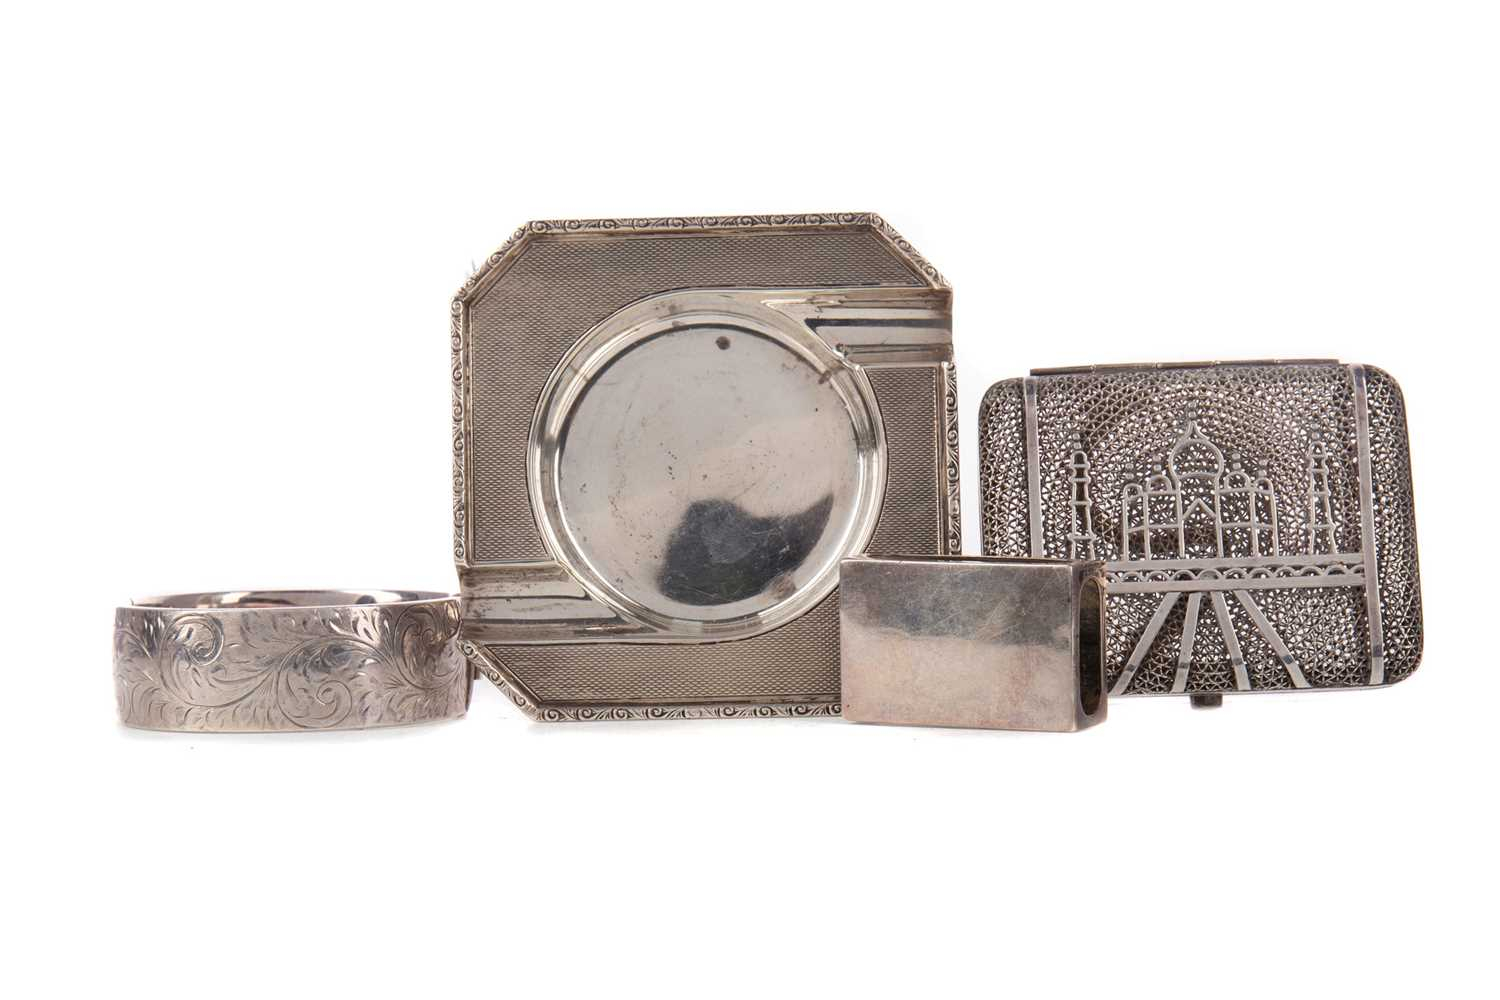 Lot 478 - A GEORGE VI SILVER ASH DISH, ALONG WITH A MATCHBOX HOLDER, BANGLE AND CARD CASE